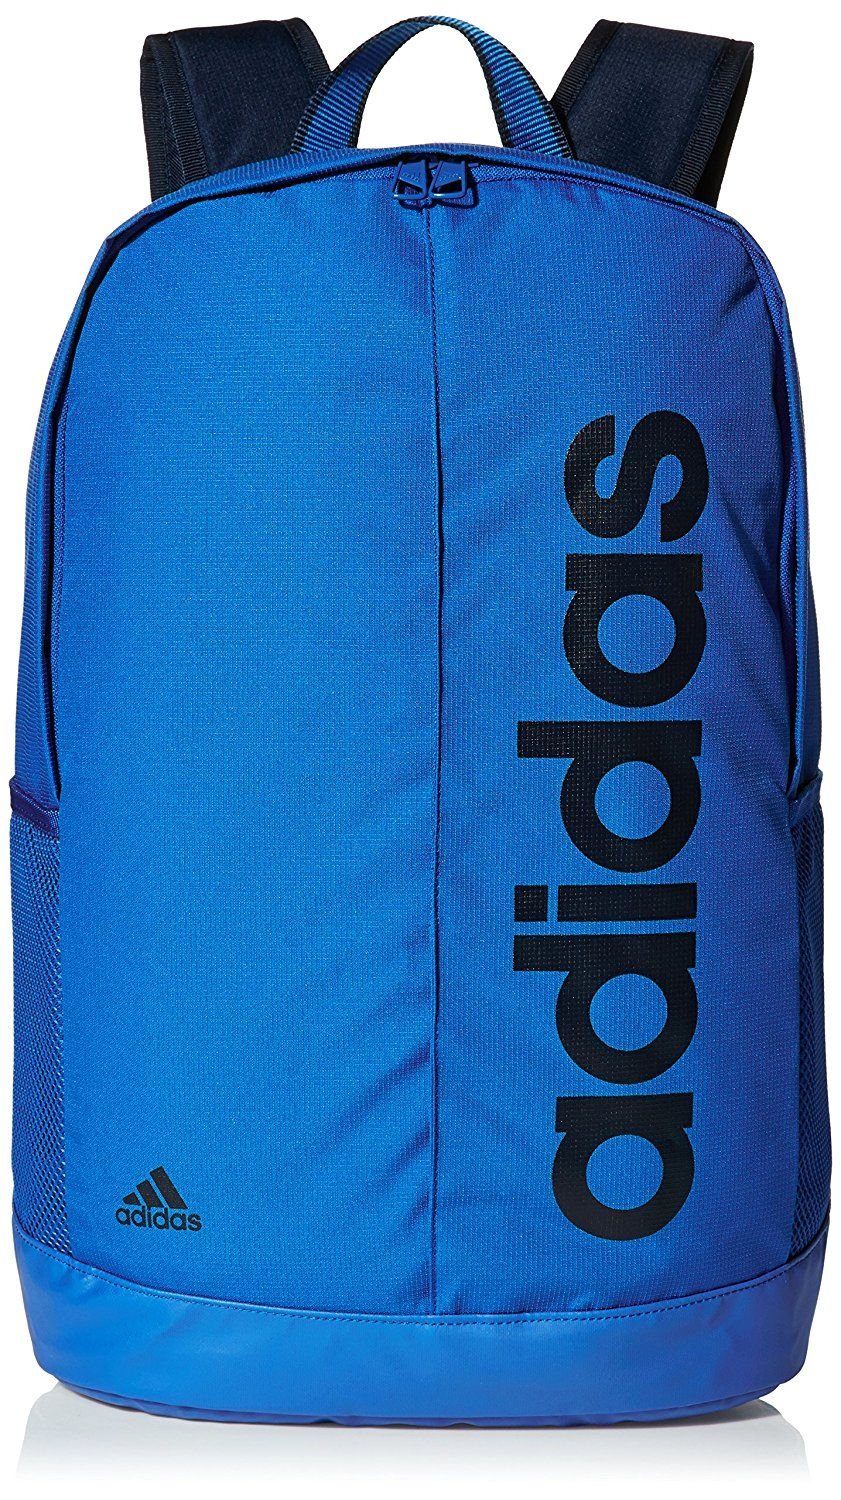 1b25d4157c7cf Adidas Performance Rucksack Backpack: Amazon.co.uk | Back to school ...